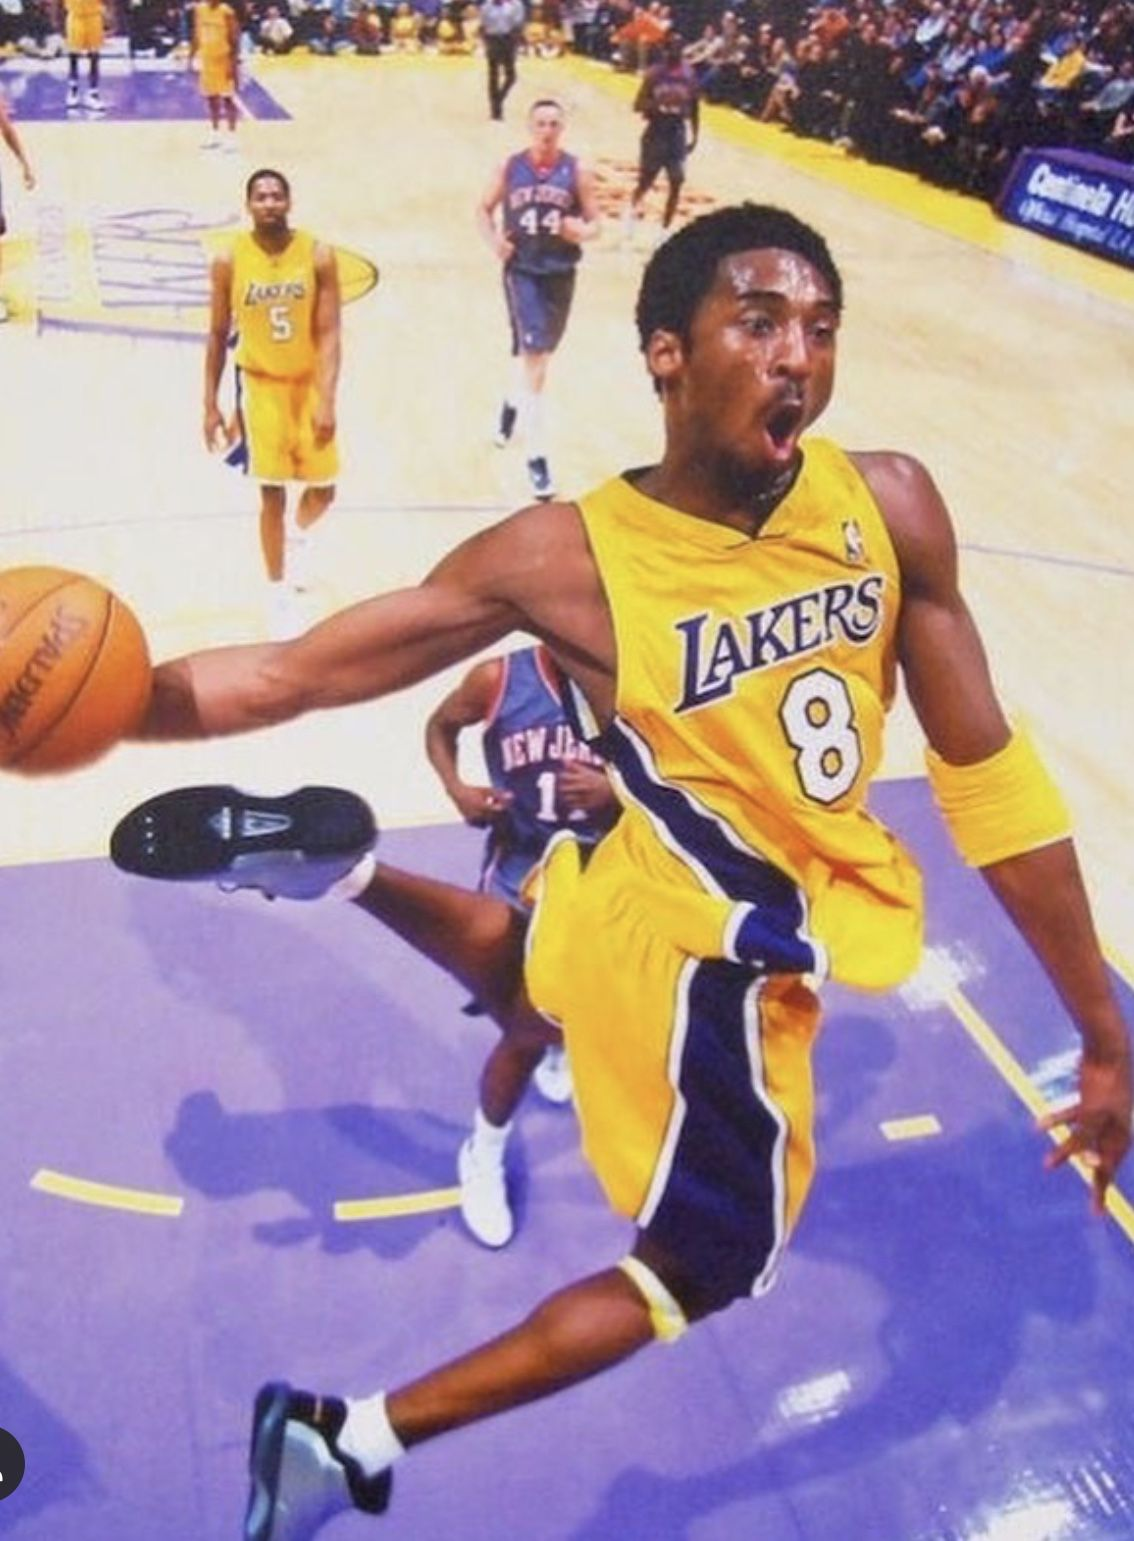 Pin by CLo on Kobe Bryant The Black Mamba & Family in